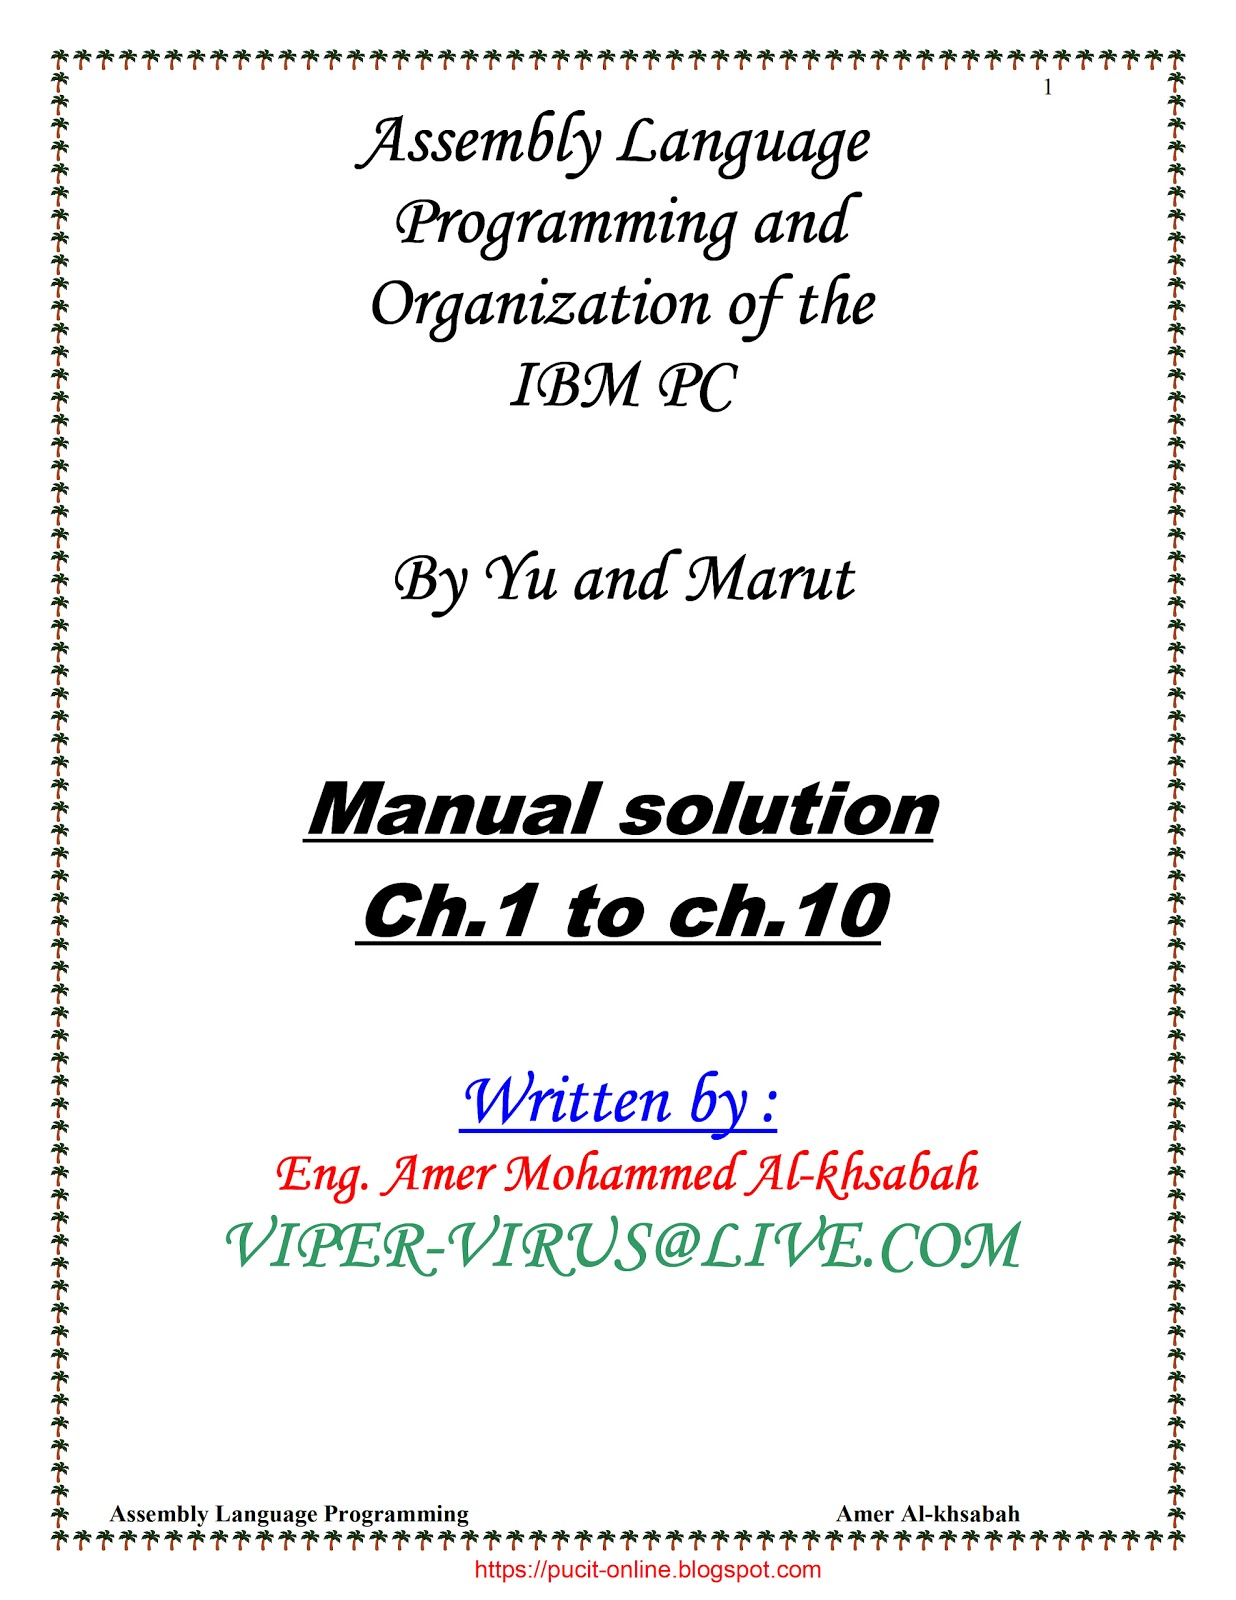 solution manual for assembly language programming and organization rh pucit online blogspot com an introduction to parallel programming pacheco solution manual solution manual for an introduction to parallel programming 1st edition peter pacheco